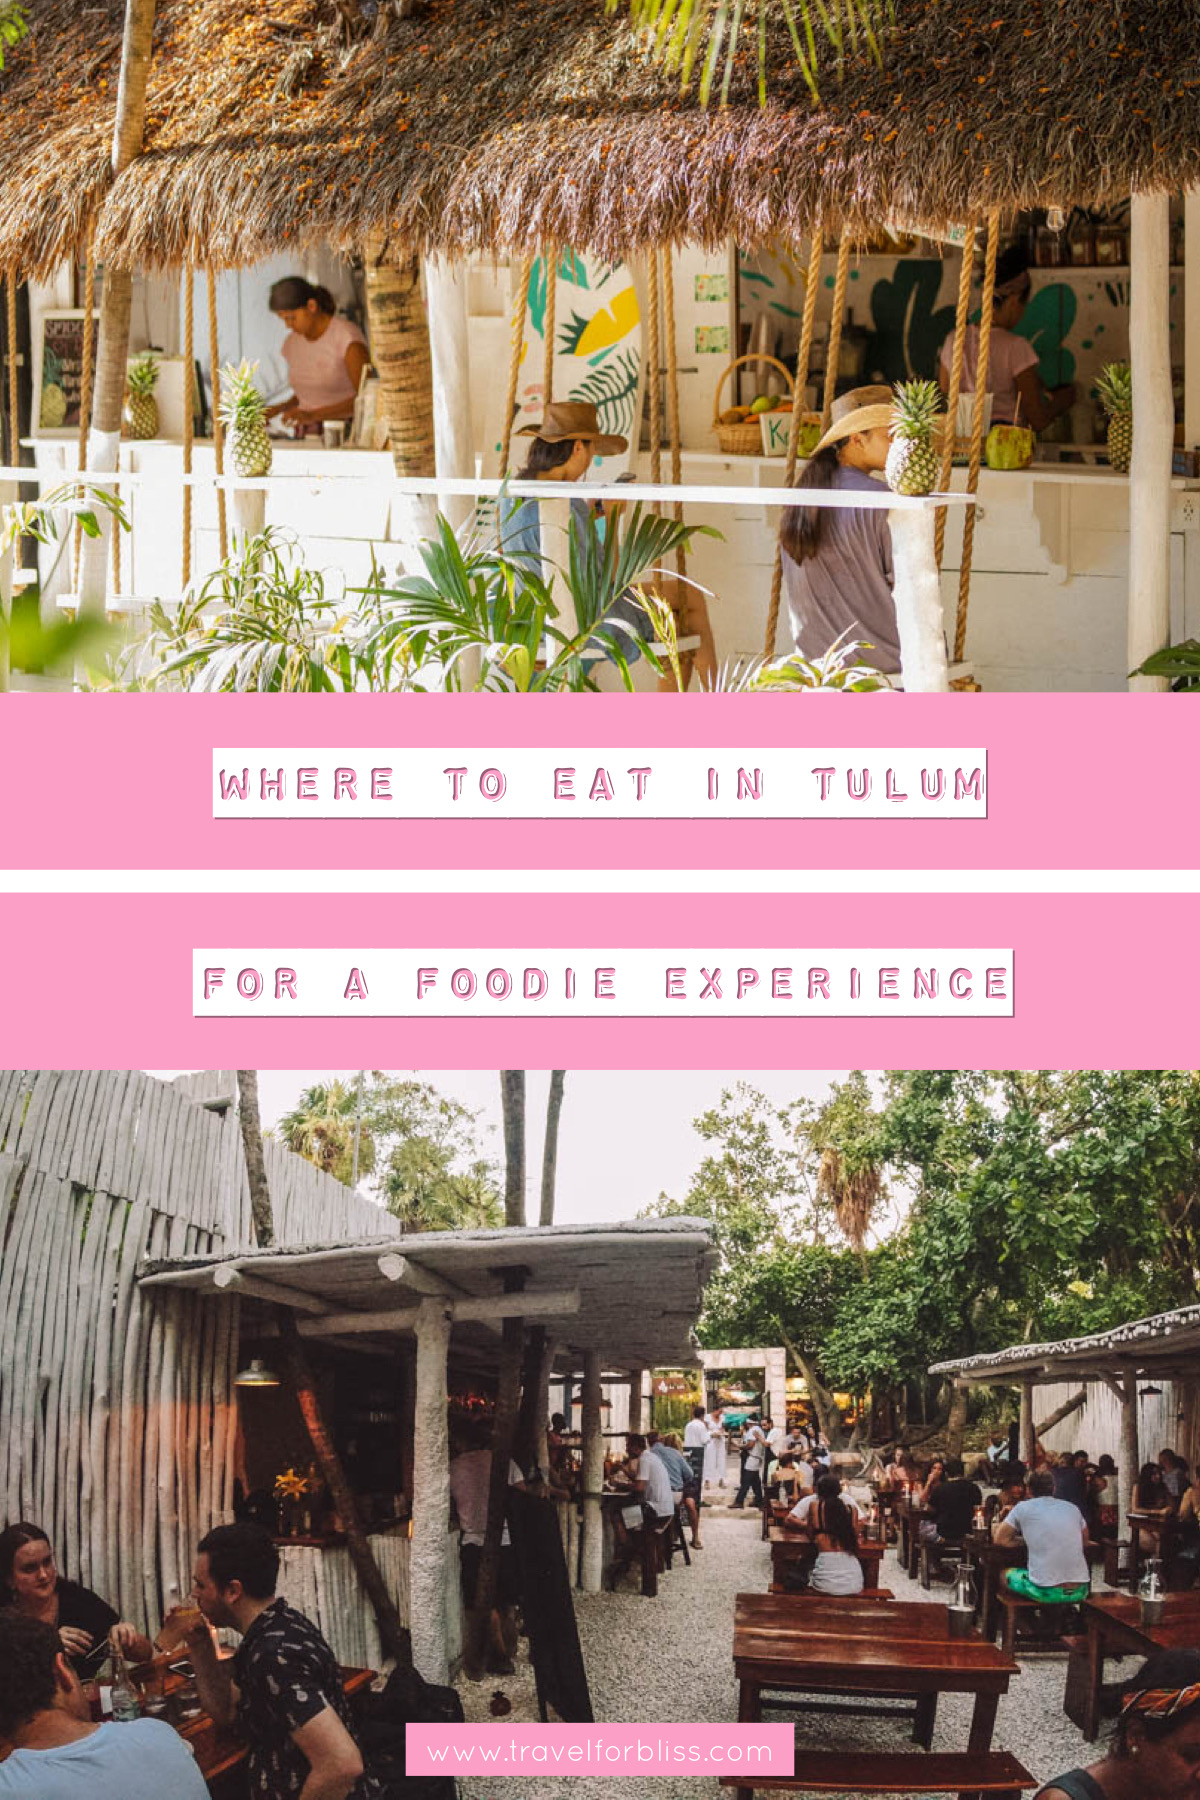 Discover where to eat in Tulum for a foodie experience. This is a travel guide on the best restaurants in Tulum Mexico